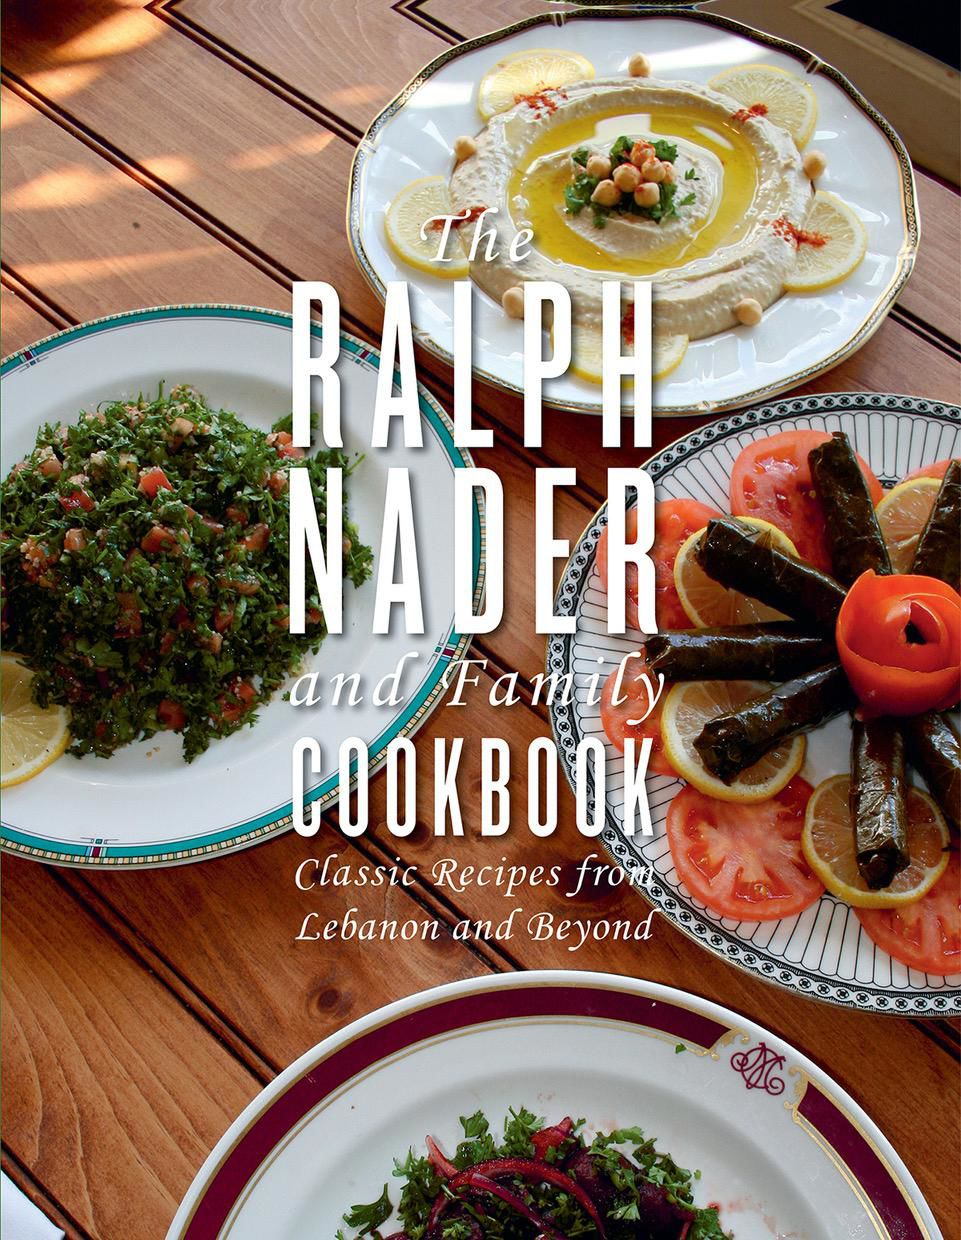 Consumer advocate and former presidential candidate Ralph Nader writes about his Lebanese culinary roots